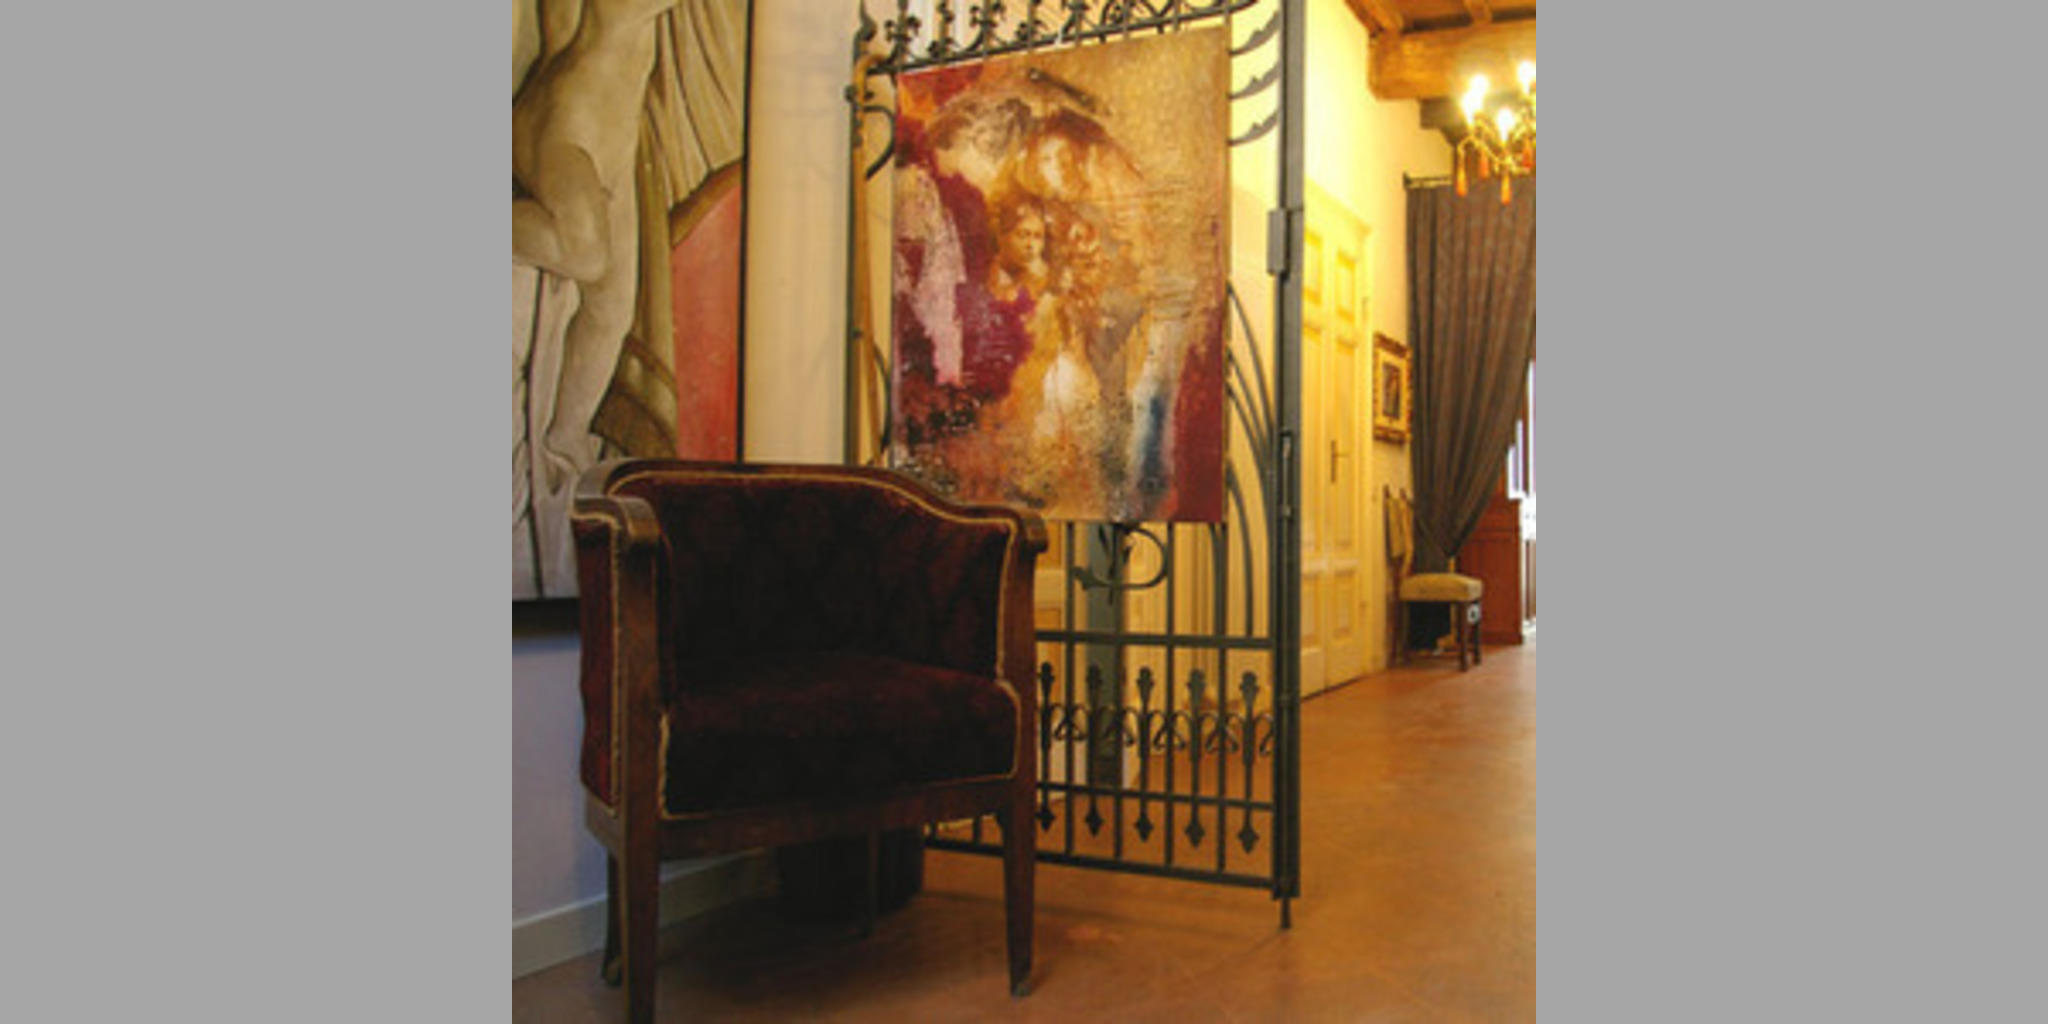 Bed & Breakfast Ravenna - Ravenna  Paolo Costa